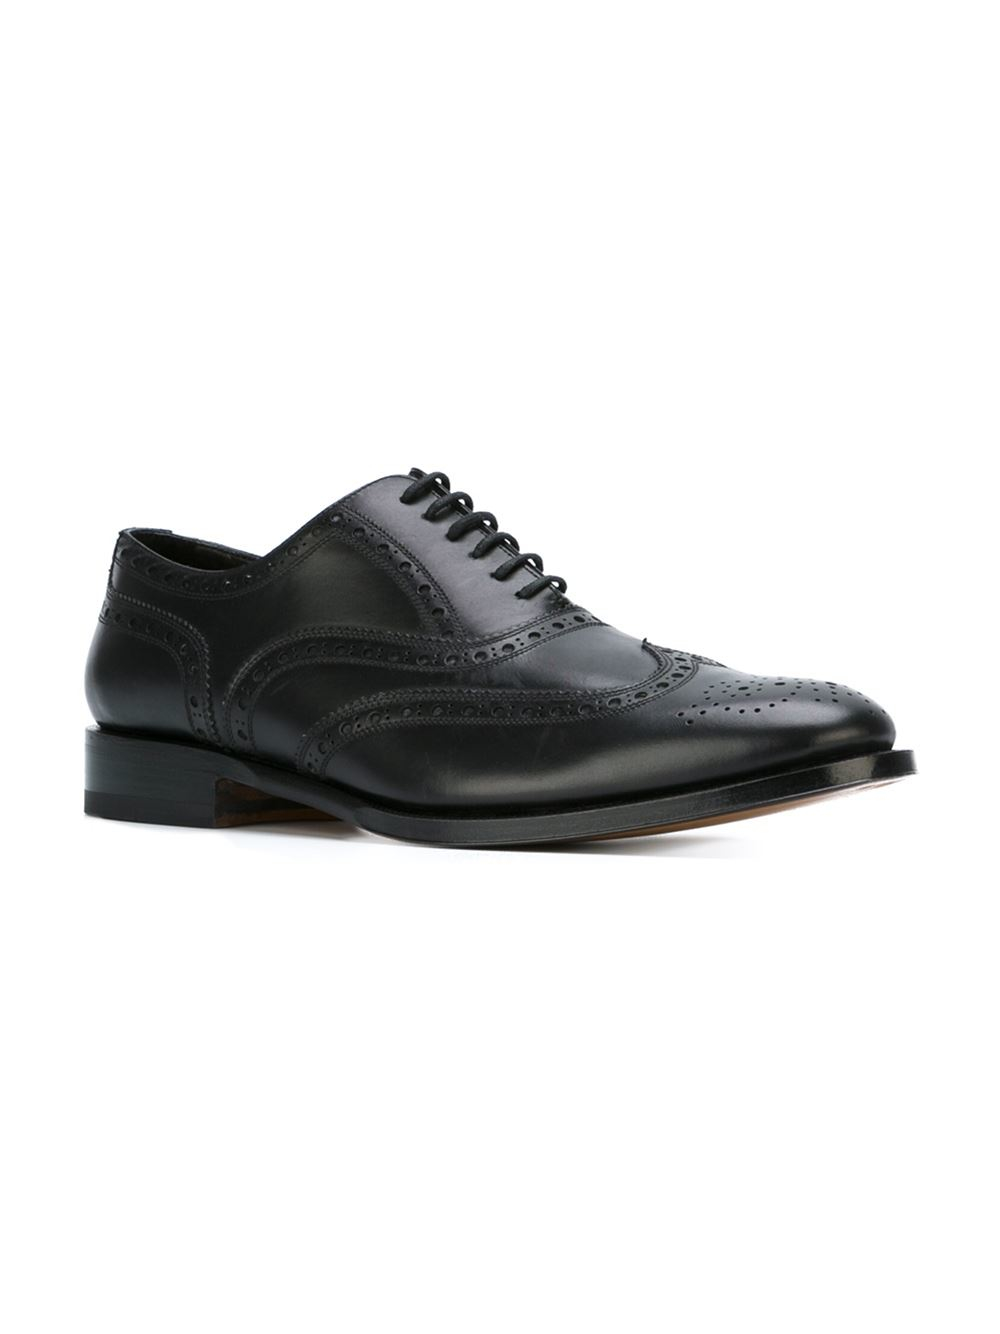 dsquared 178 classic brogue shoes in black for